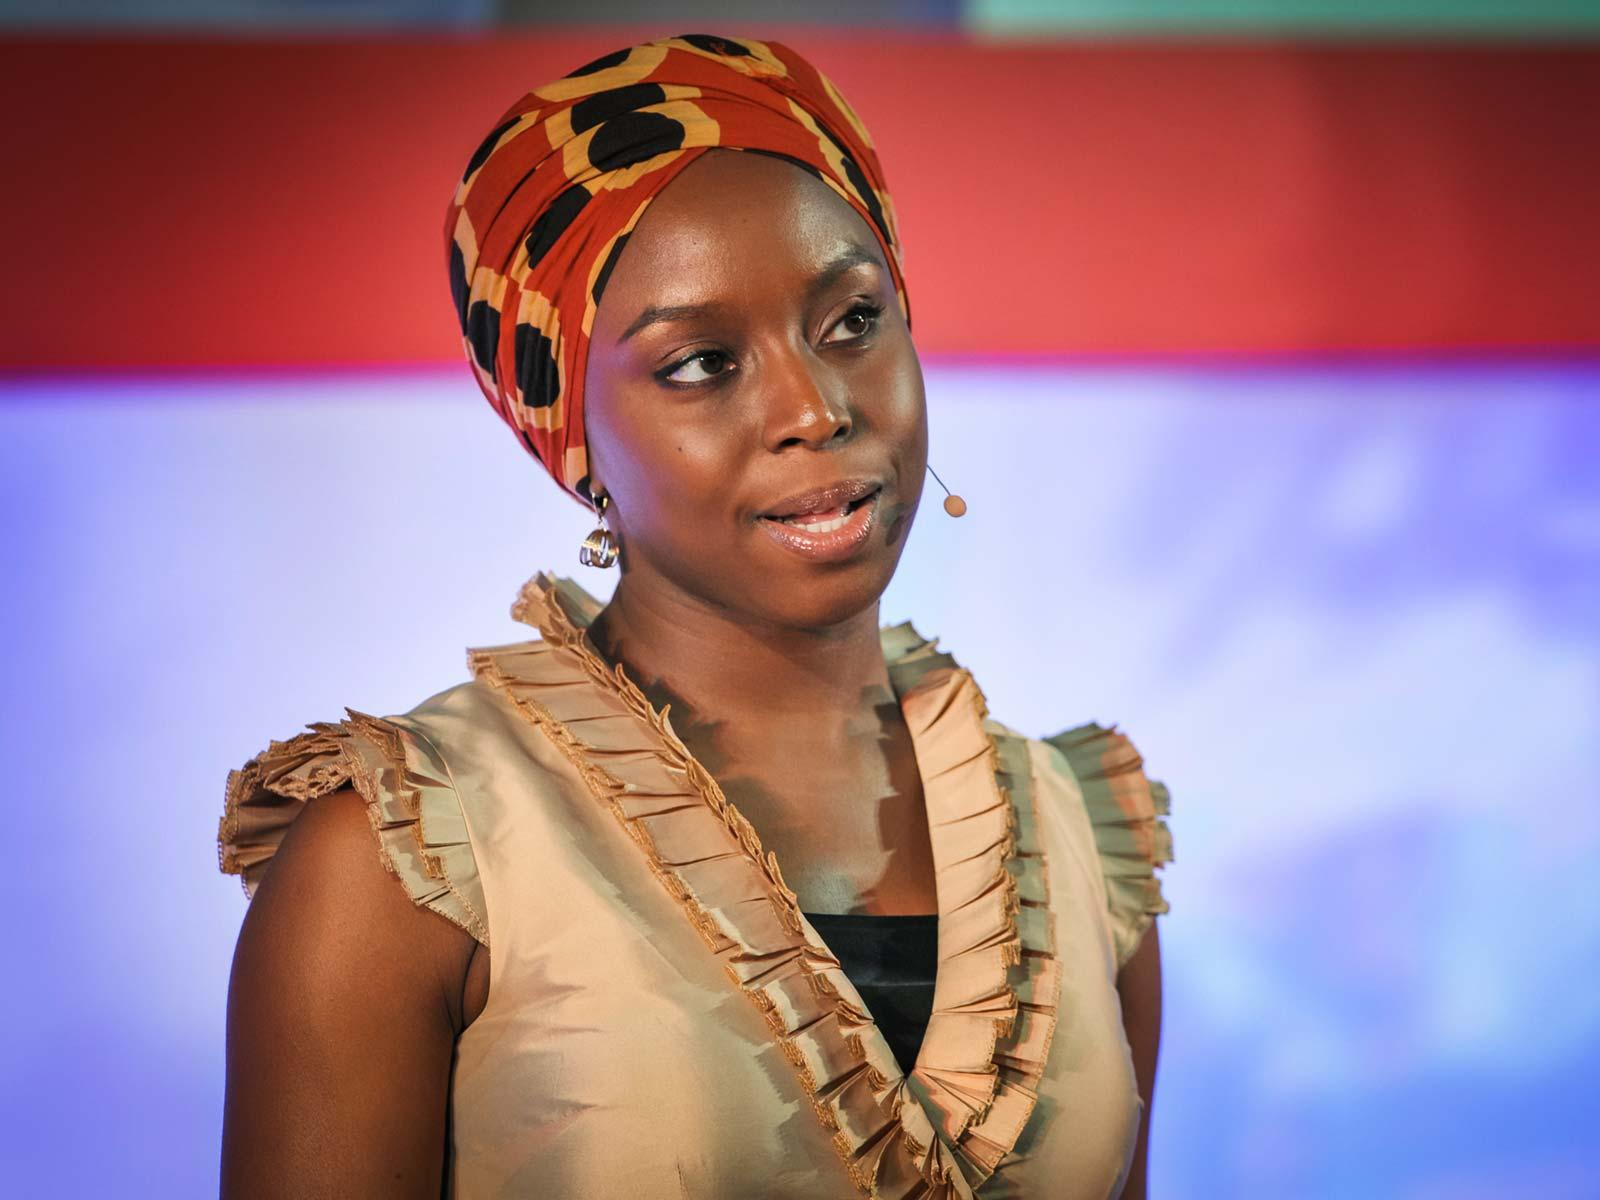 Chimamanda Ngozi Adichie speaking